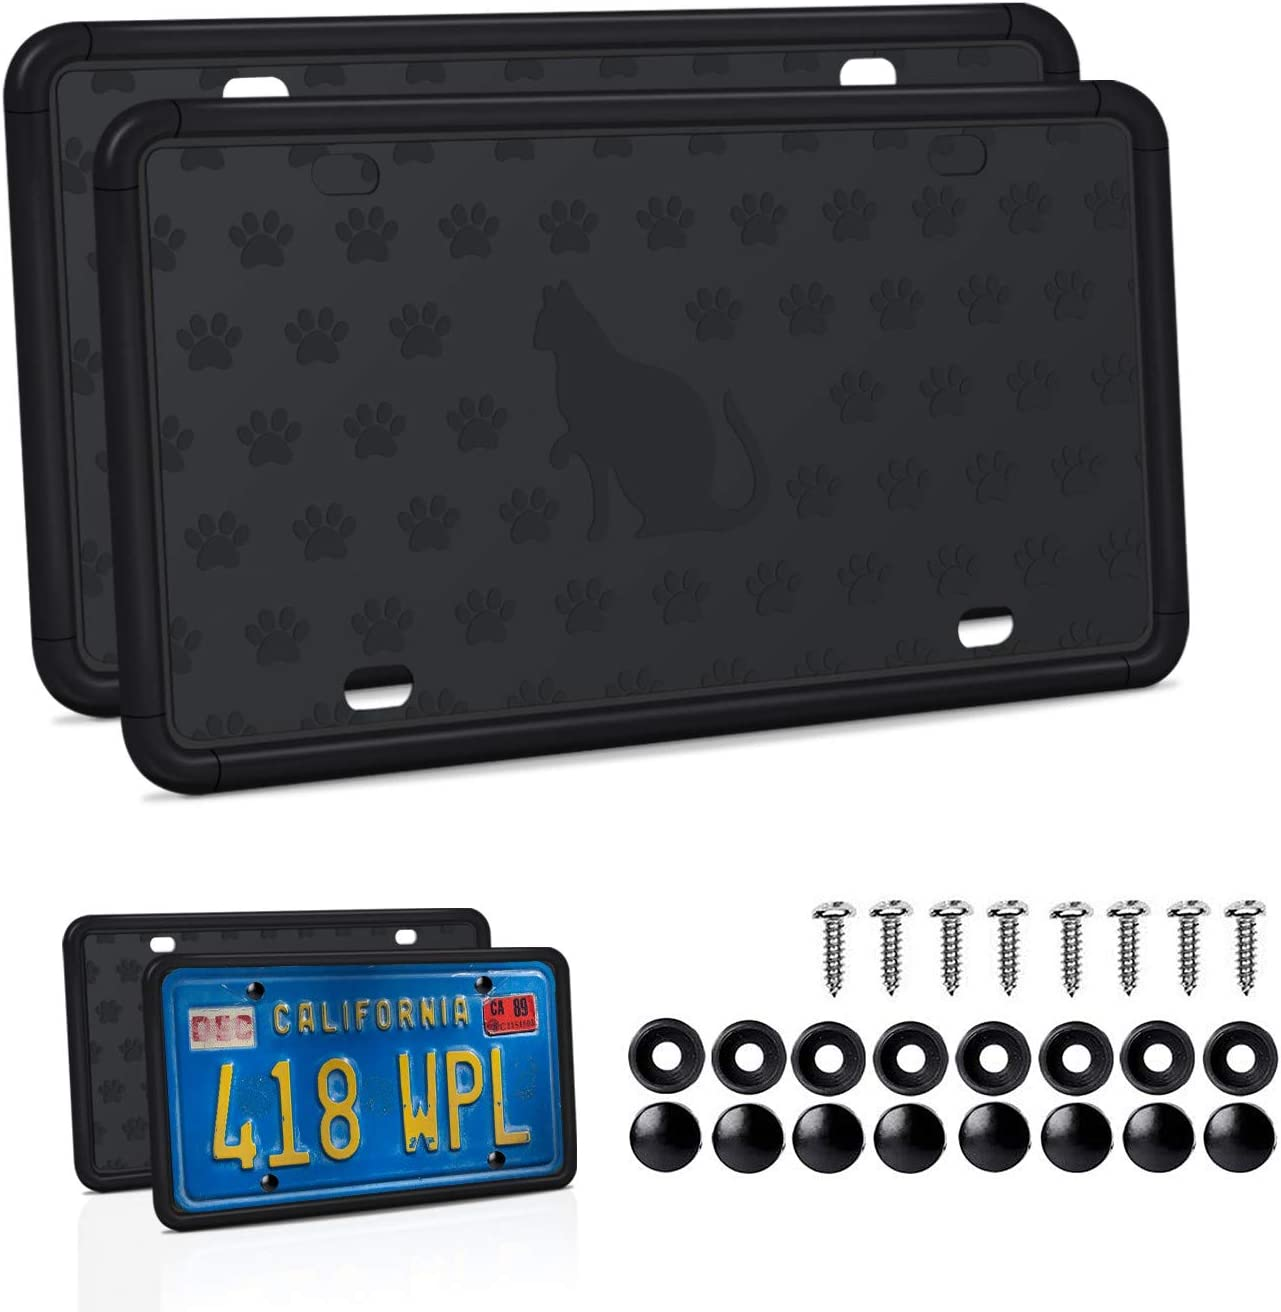 Mookis License Plate Frame Silicone License Plate Frame with Installation Screws and 9 Drainage Holes Type 2 Weather /& Rattle-Proof 2 PCS Black Auto License Plate Holder Water-Proof Rust-Proof